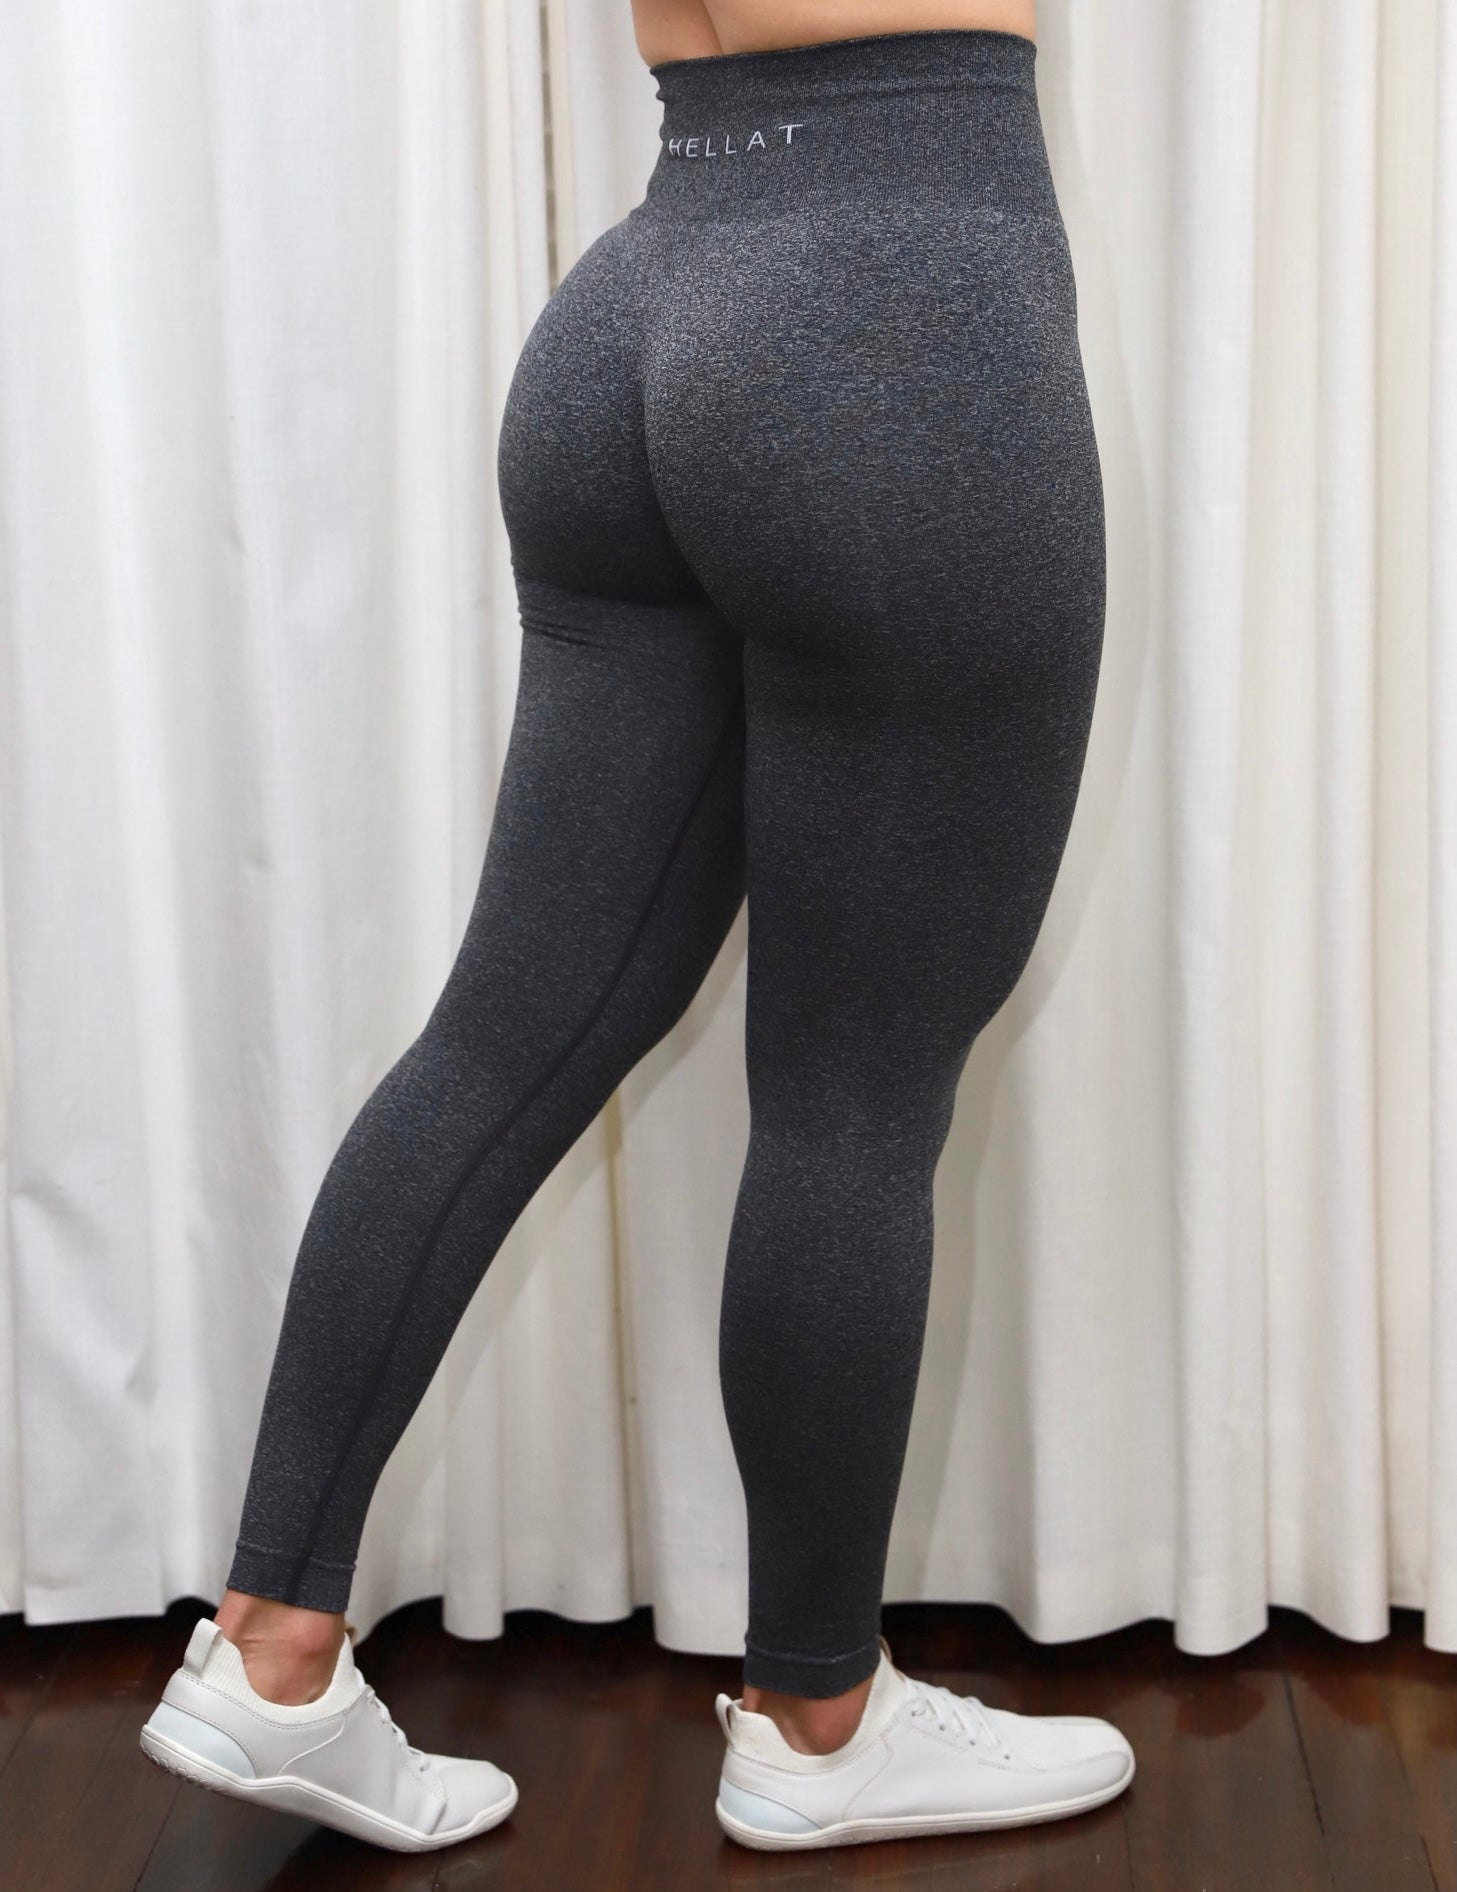 DARK GREY SEAMLESS LEGGINGS